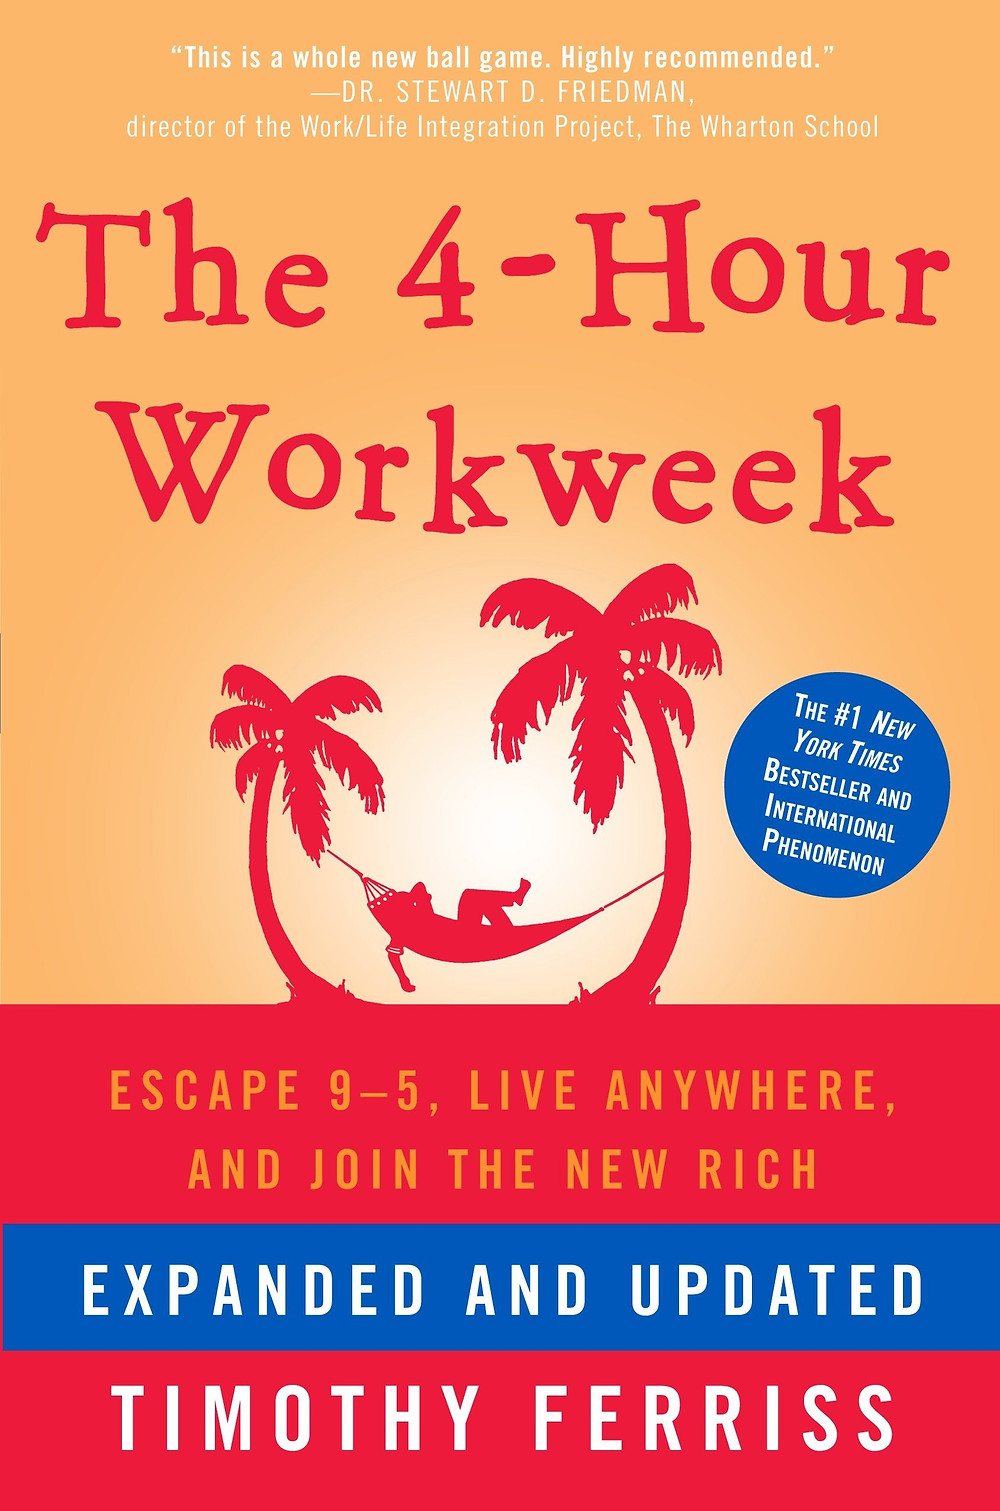 The 4-Hour Workweek (Expanded and Updated) - by Timothy Ferriss